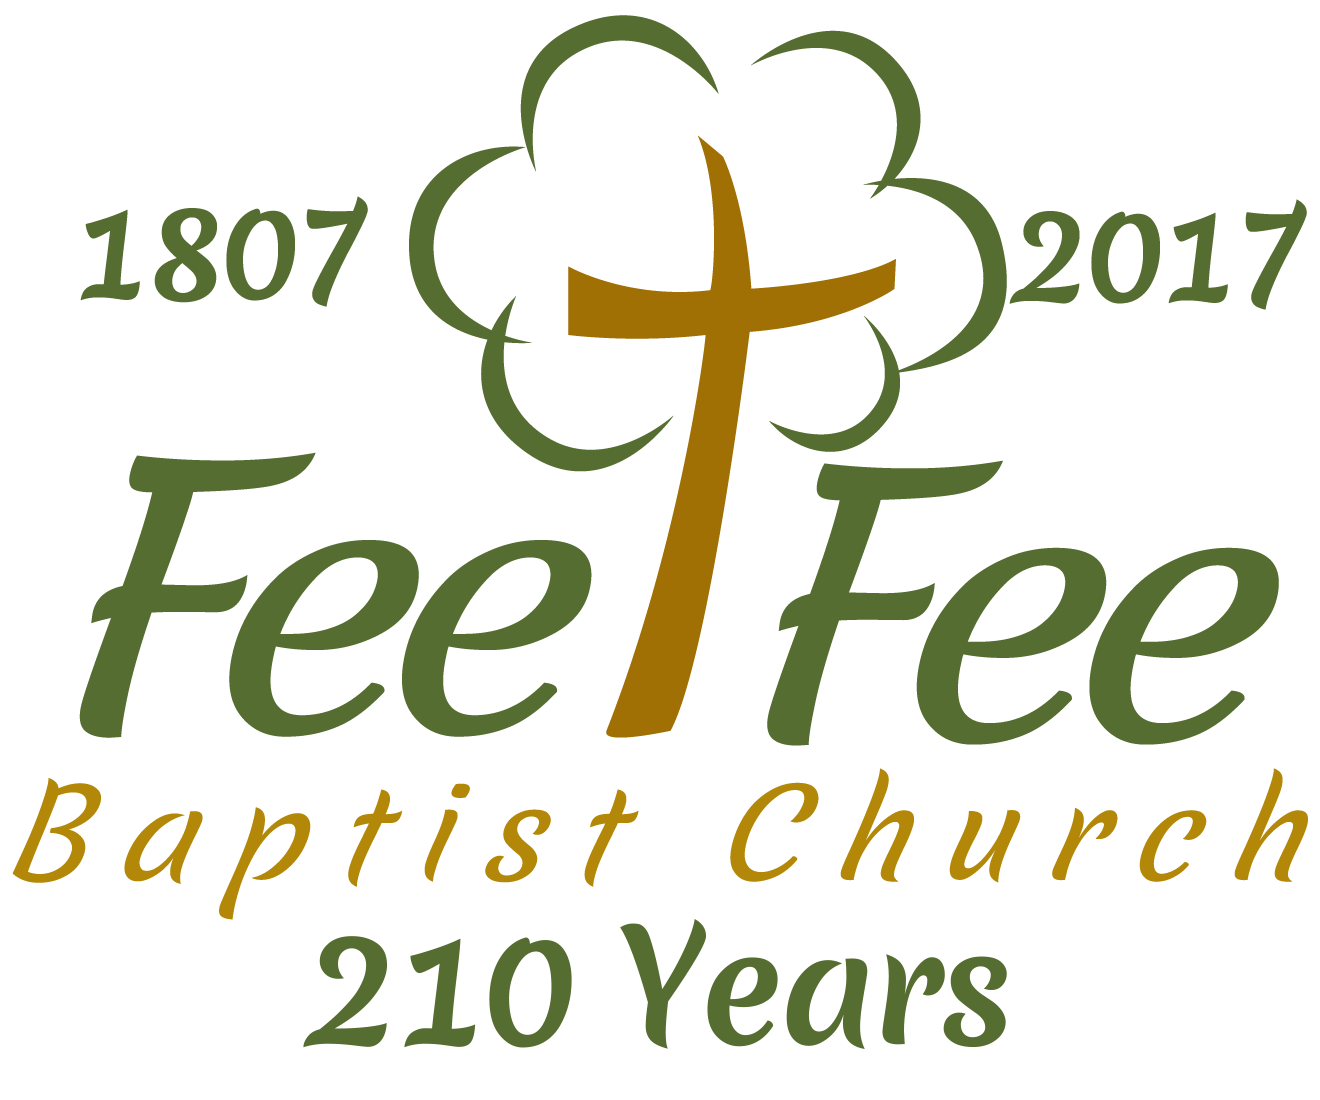 Fee Fee Baptist Church